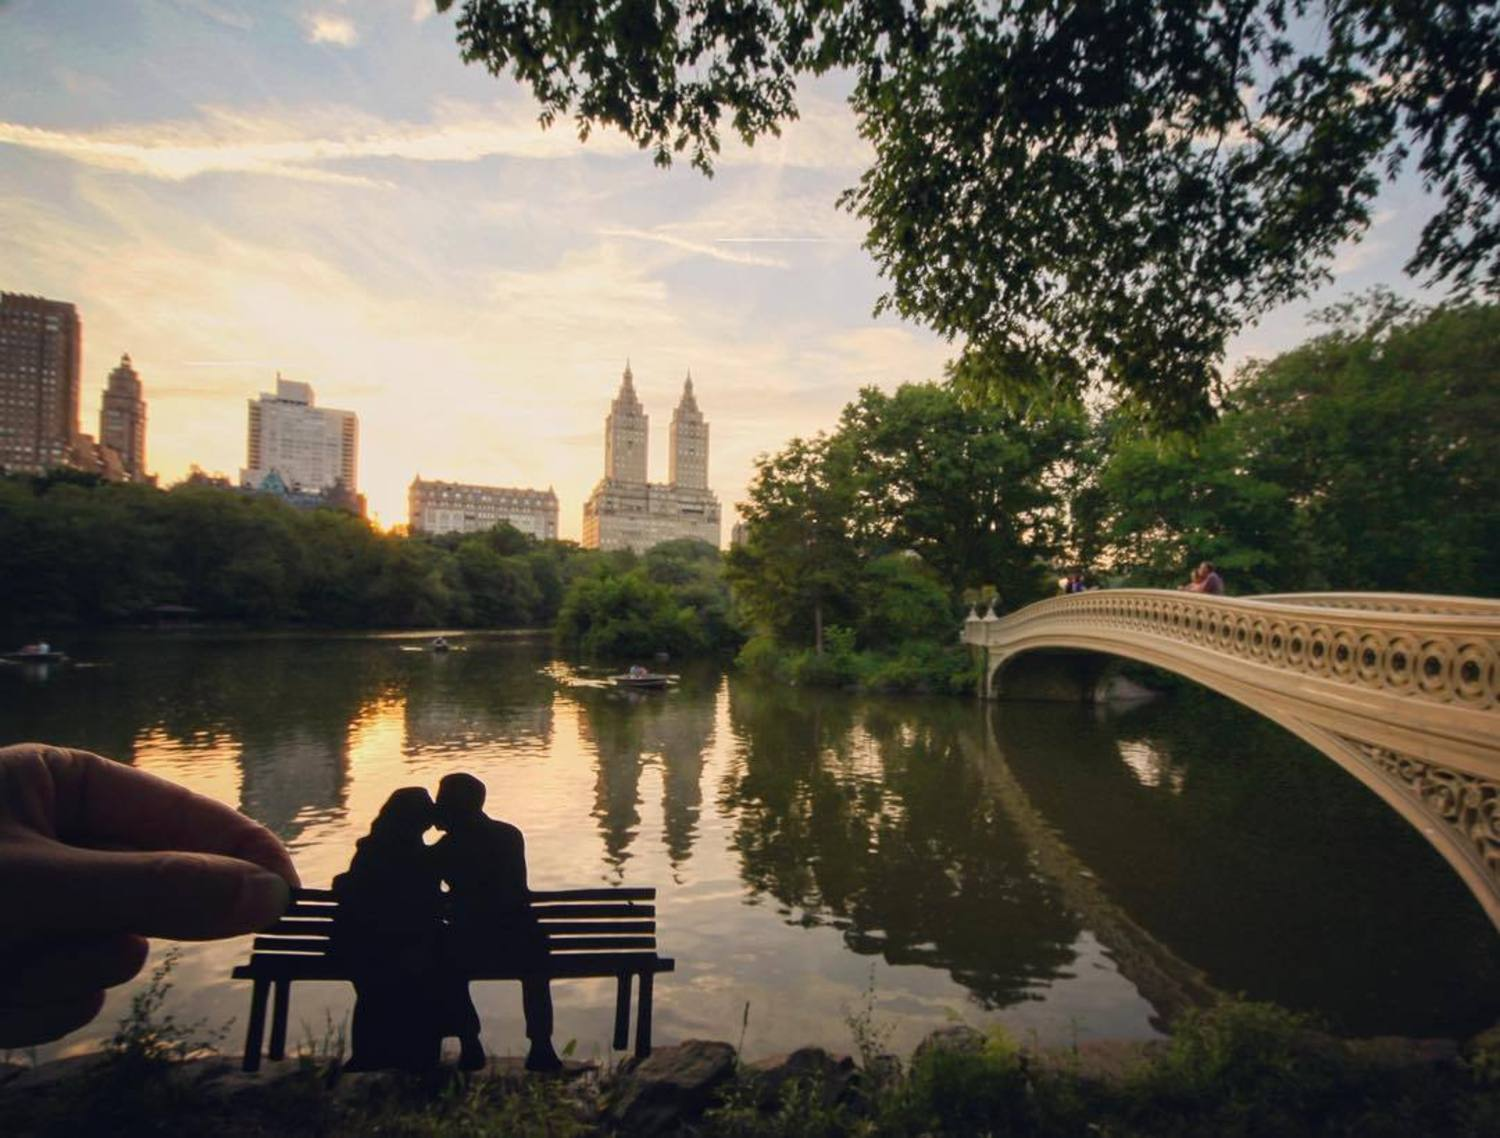 The most romantic spot in the city? (For other great spots in NYC, check out @lonelyplanet 's app. Link in bio) #CentralPark @CentralParkNYC @CentralParkNewYork #Bench #Couple #NewYork #NYC #Skyline #SeeYourCity @NYC #InstagramNYC @NewYorkCity #NYCInstantly #nycphotographer #nycblogger #Paper #Paperart #Cityscape #Silhouette @newyork_instagram @newyork #thecreatorsclass #illgrammers #createcommune #photography #artofvisuals #visualsoflife #travelawesome #newyorker #Romantic #USA #Lovers #Romance #LonelyPlanet #Reflections #Reflection